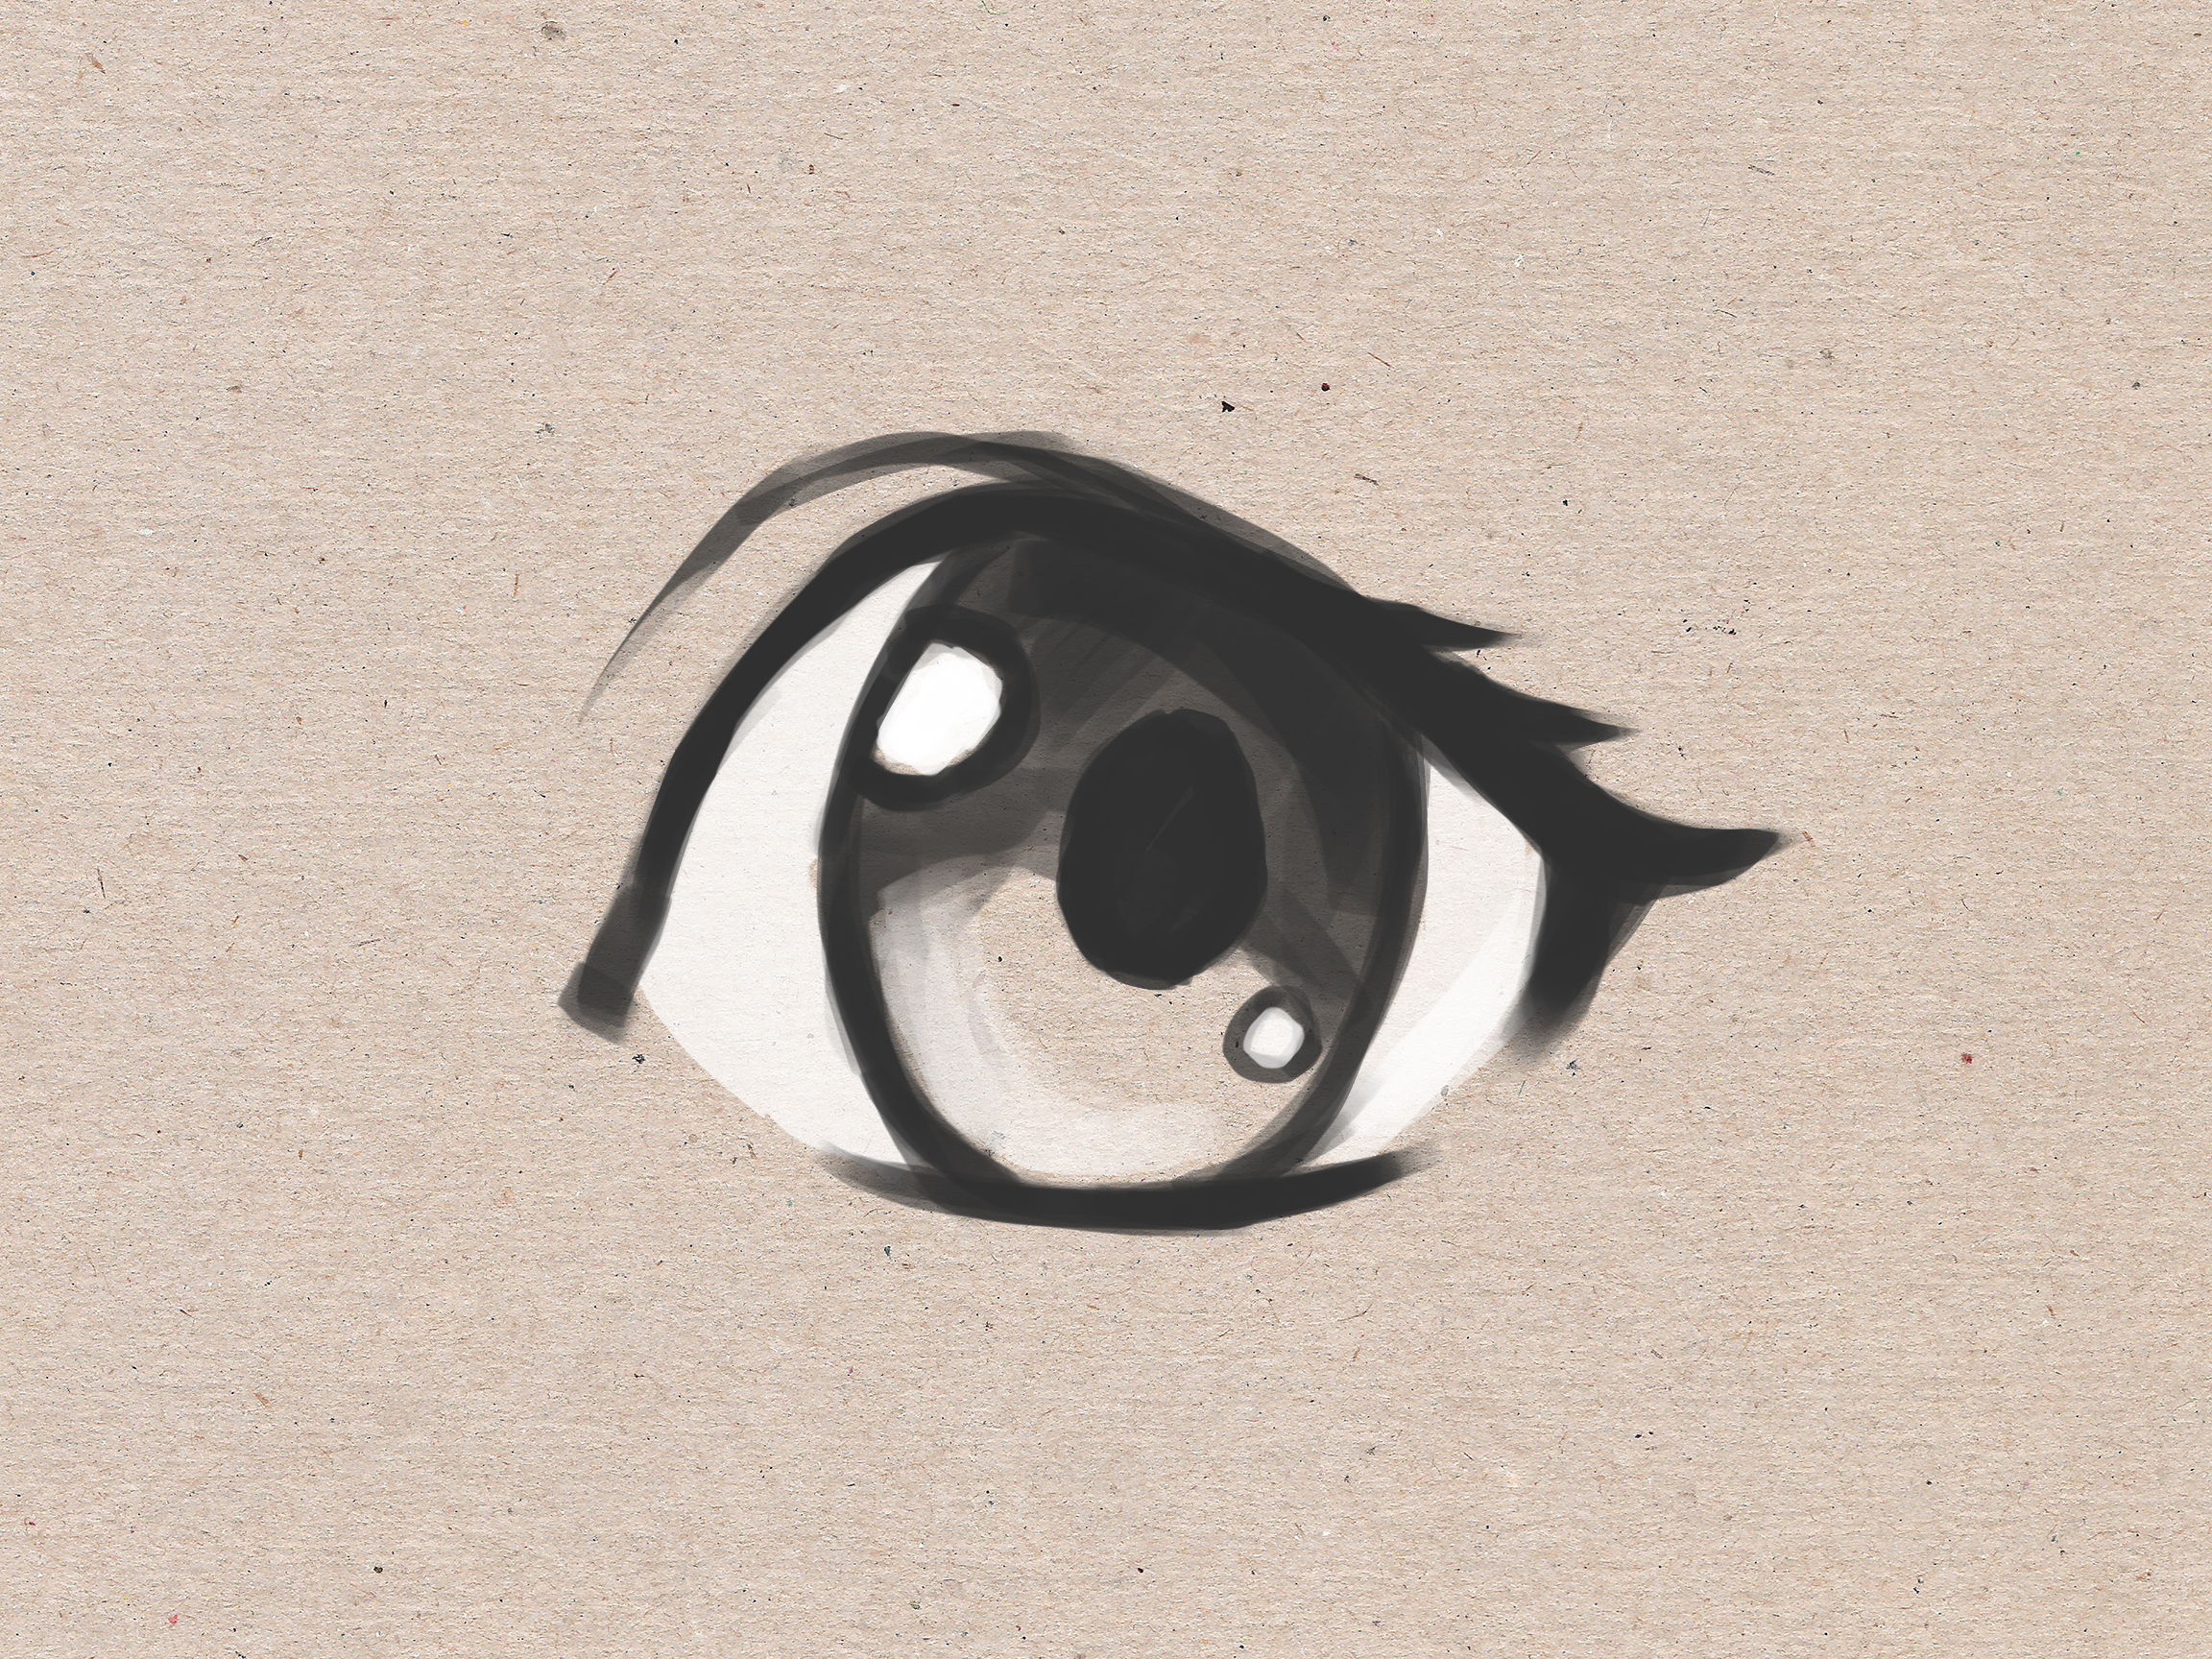 2304x1728 How To Draw Simple Anime Eyes 5 Steps (With Pictures)